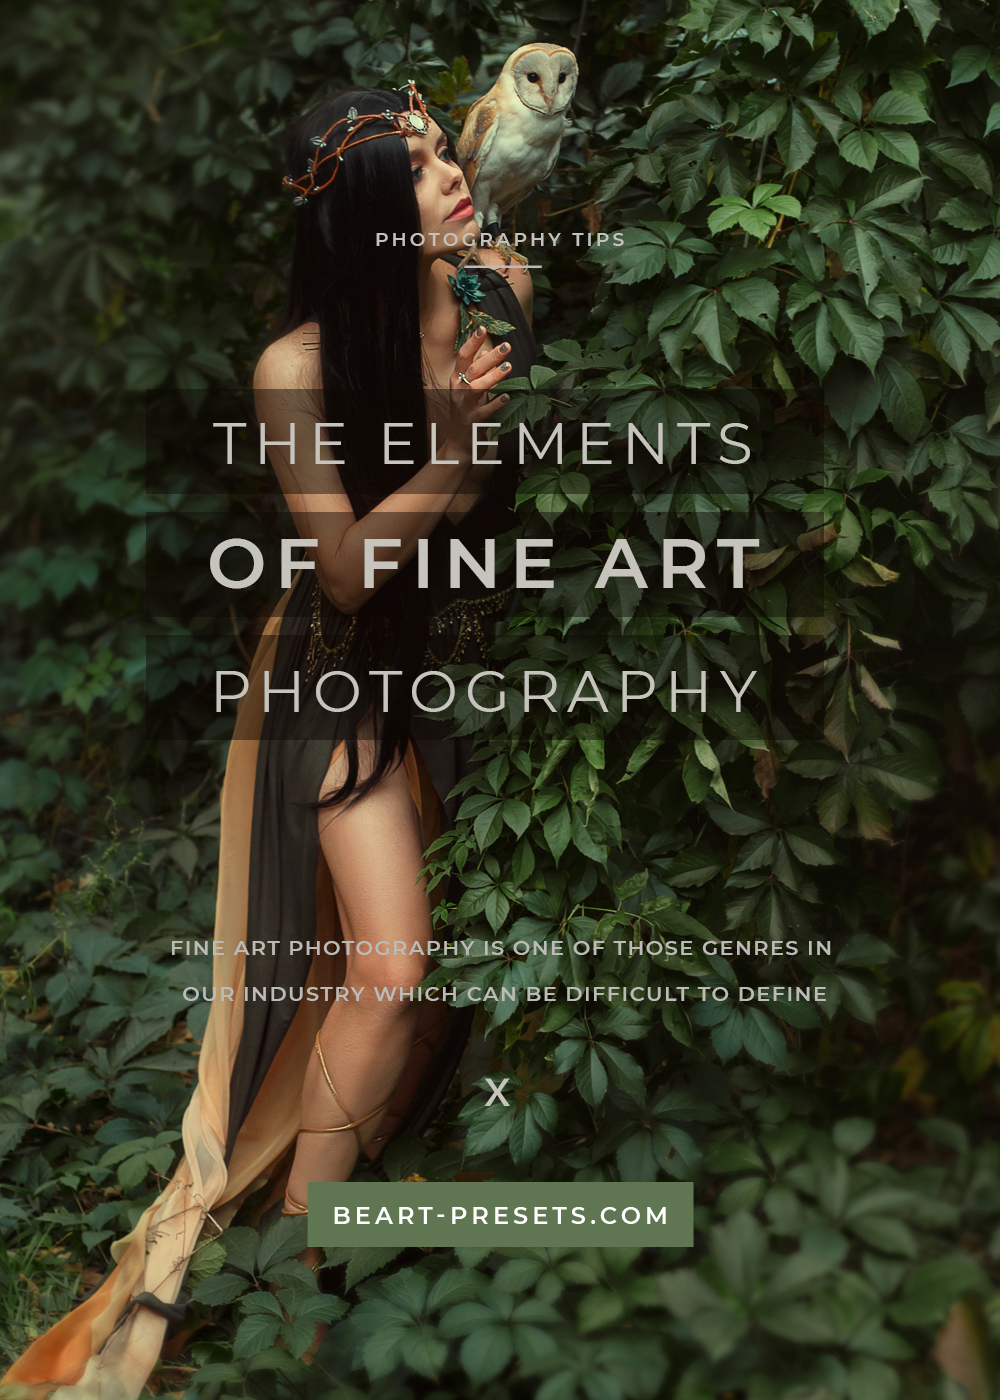 The Elements Of Fine Art Photography